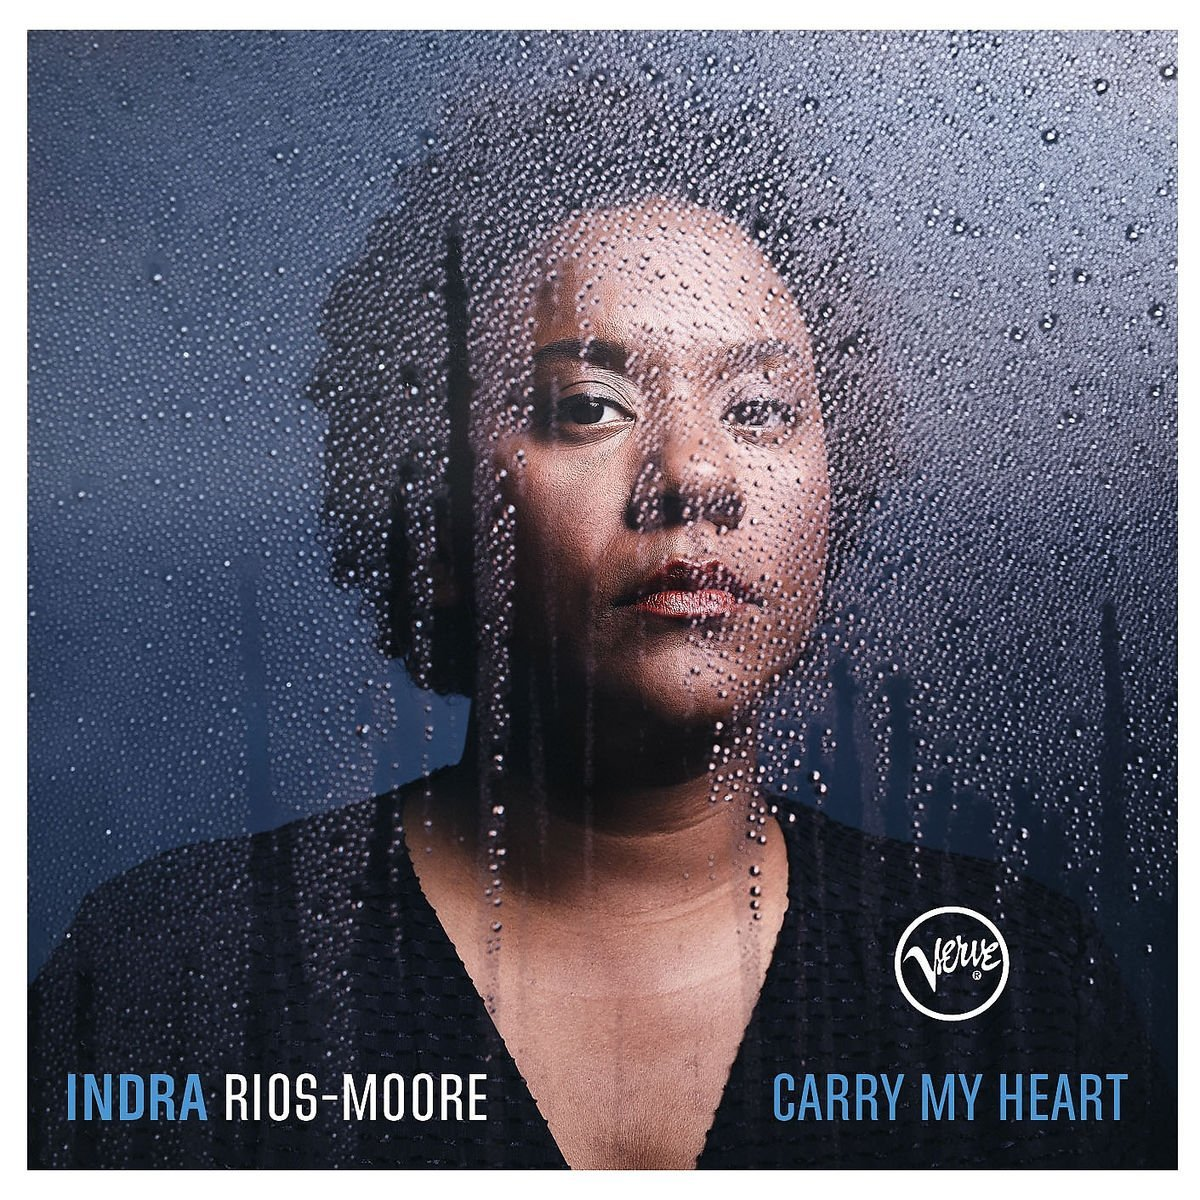 INDRA RIOS-MOORE - Carry My Heart cover